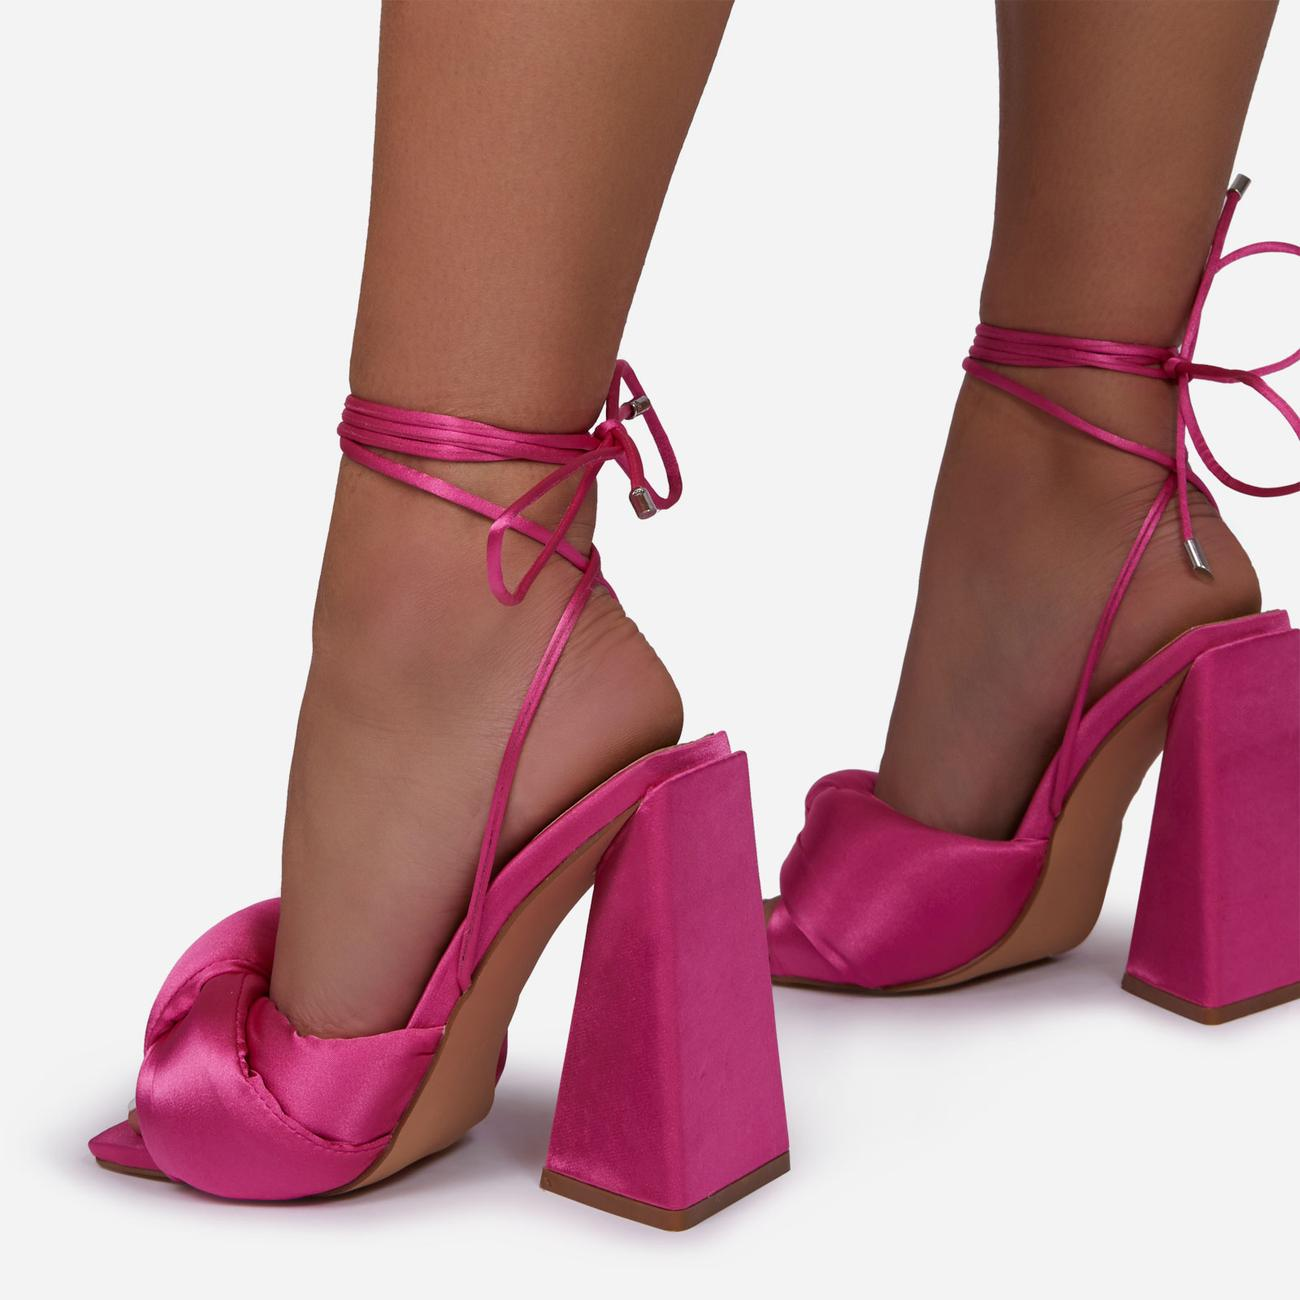 Cushy Knotted Detail Lace Up Square Peep Toe Sculptured Flared Block Heel In Fuchsia Pink Satin Image 4